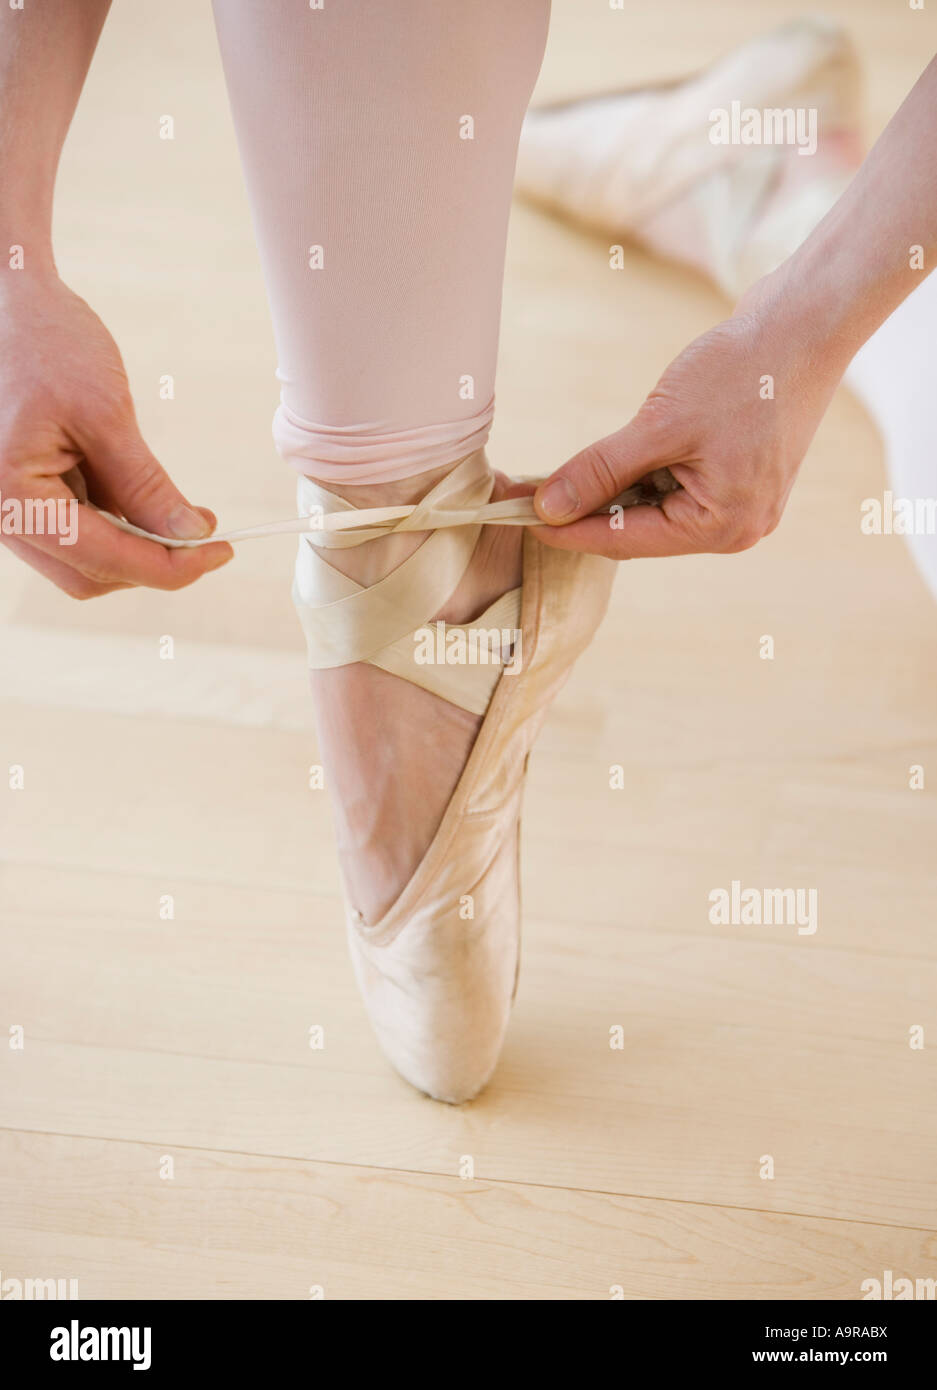 Female ballet dancer tying pointe shoes - Stock Image